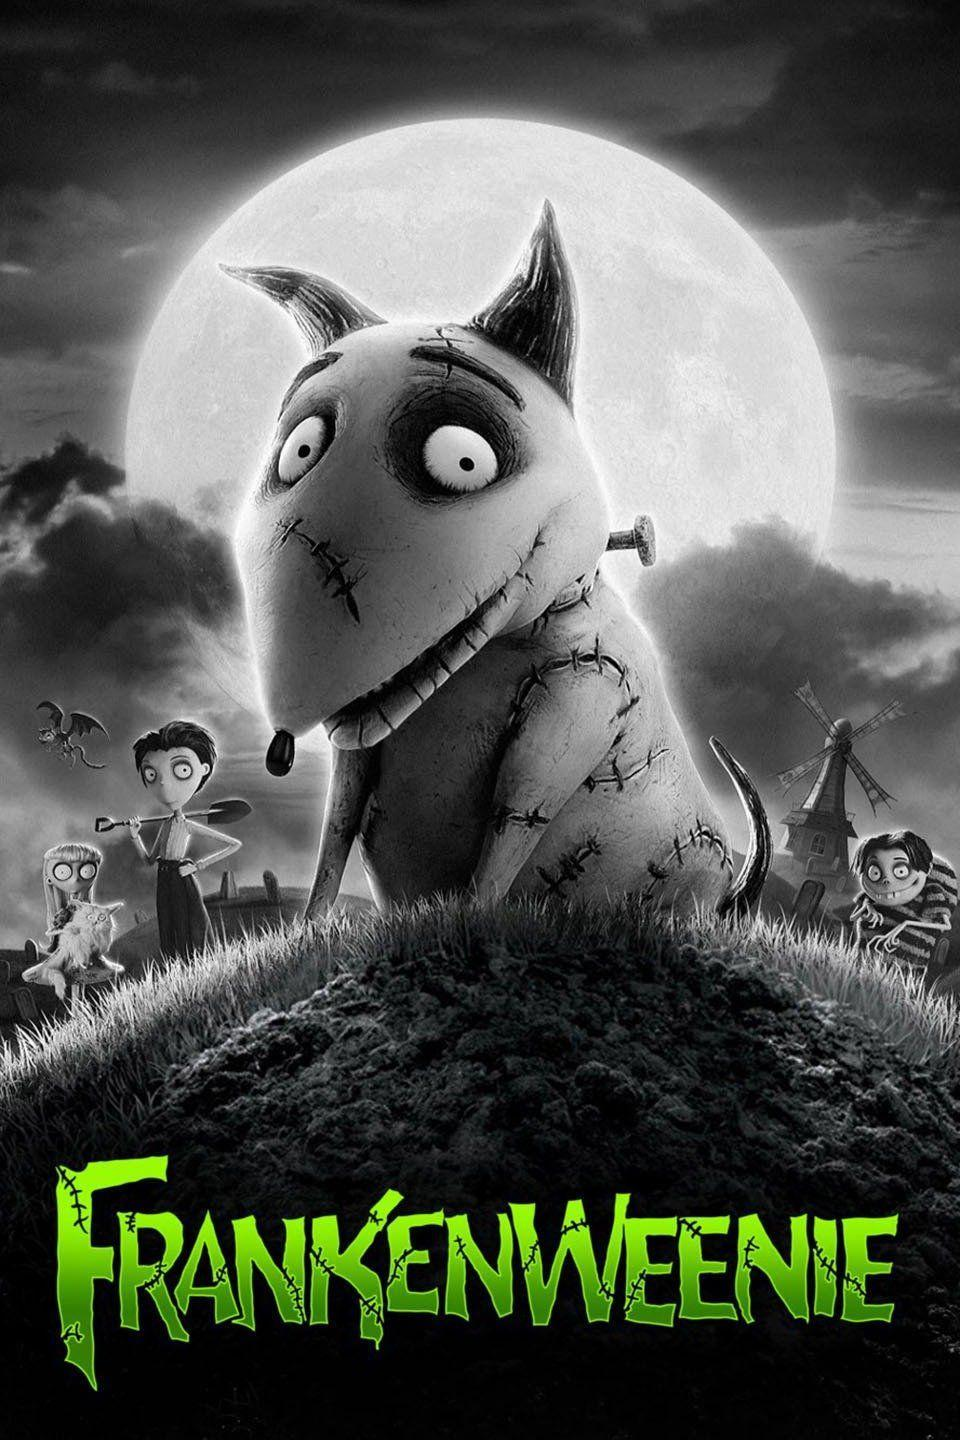 """<p>When a little boy's beloved dog, Sparky, dies, he just can't face life without him. After learning from his science teacher that even after death, muscles respond to electricity, he doesn't have to. In this black-and-white animated film by Tim Burton, <em>Frankenstein</em> meets <em>Lassie</em> for an eerily entertaining tale of man's best friend.</p><p><a class=""""link rapid-noclick-resp"""" href=""""https://go.redirectingat.com?id=74968X1596630&url=https%3A%2F%2Fwww.disneyplus.com%2Fmovies%2Ffrankenweenie-2012%2FmsxVowQvL18k&sref=https%3A%2F%2Fwww.countryliving.com%2Flife%2Fentertainment%2Fg32748070%2Fdisney-plus-halloween-movies%2F"""" rel=""""nofollow noopener"""" target=""""_blank"""" data-ylk=""""slk:WATCH NOW"""">WATCH NOW</a></p>"""